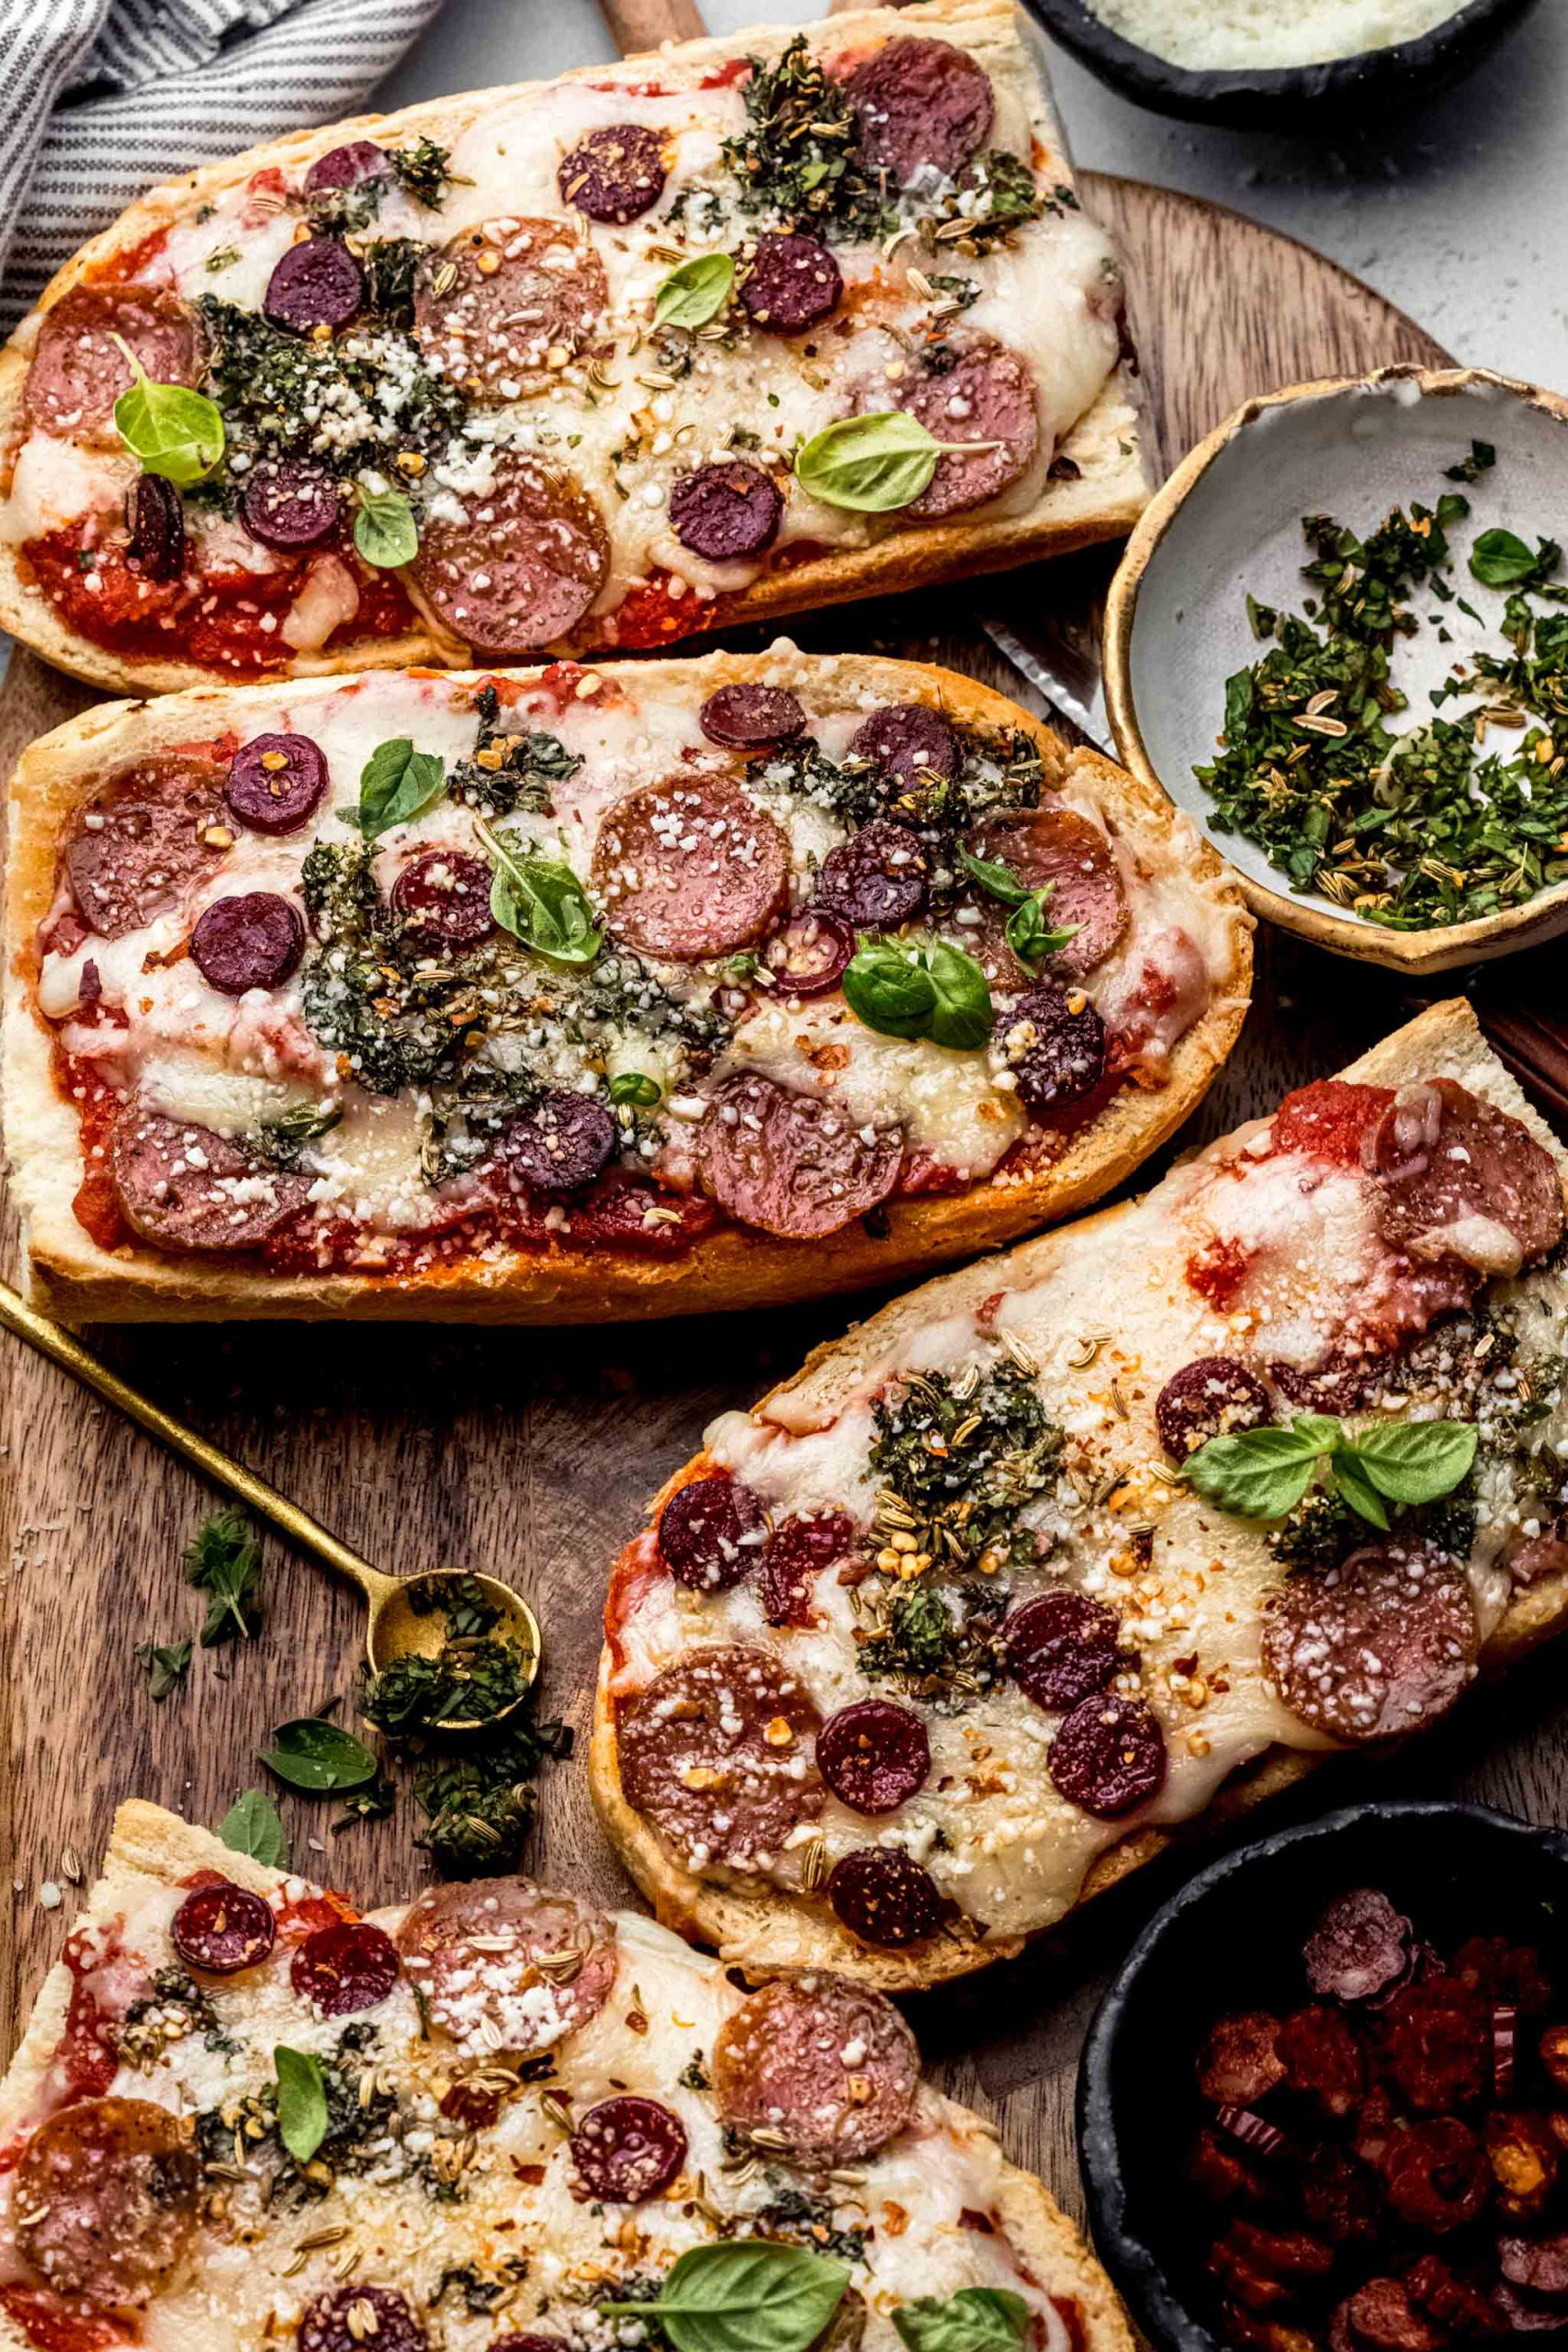 French bread pizzas on cutting board next to small bowl of herbs and pepperoni.